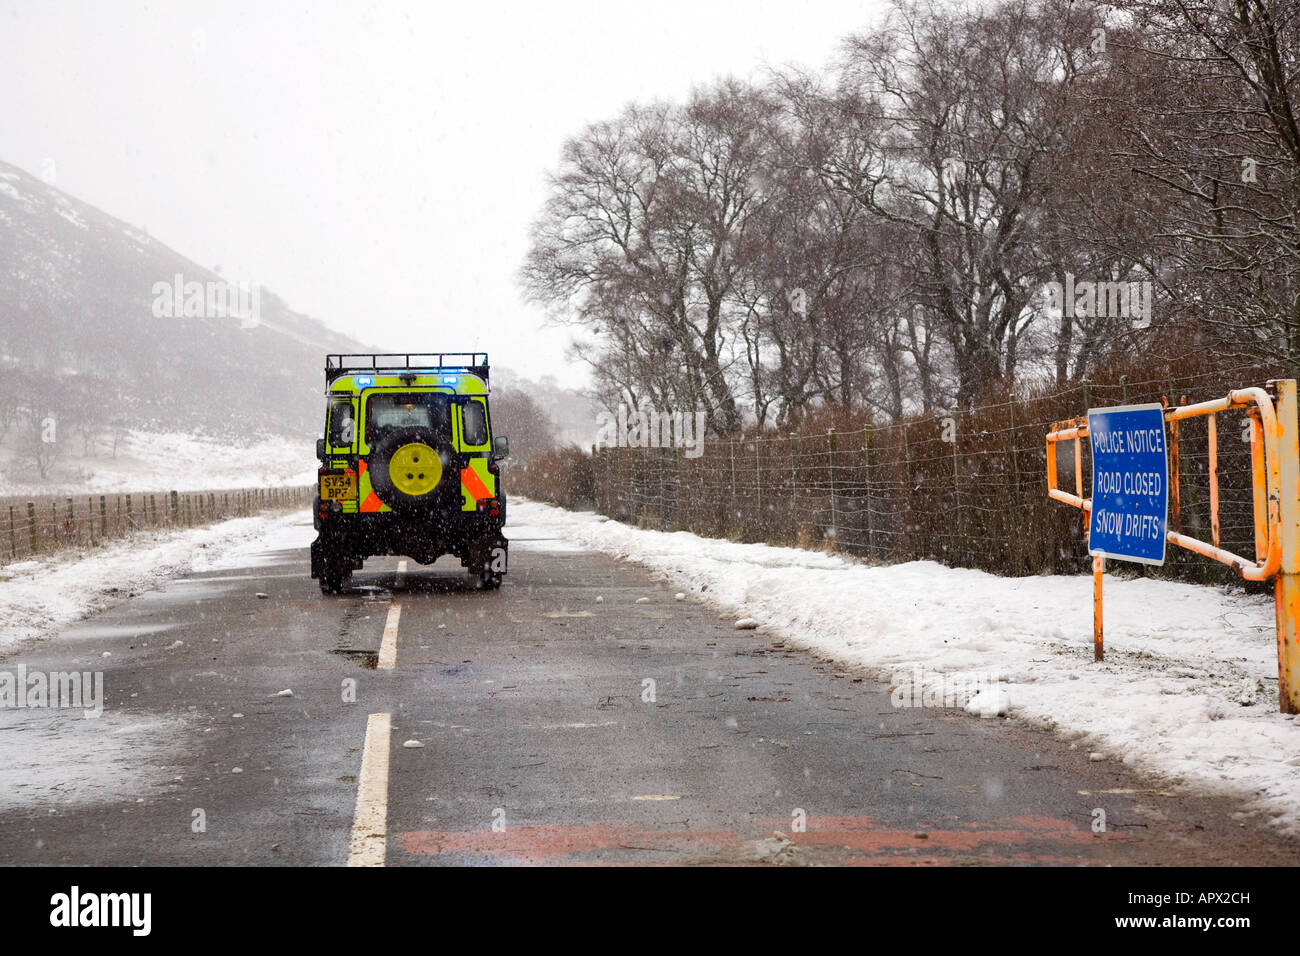 Snow gates & access road closed sign on the A93 Braemar, Glenshee, Blairgowrie road after winter blizzard, Cairngorms - Stock Image